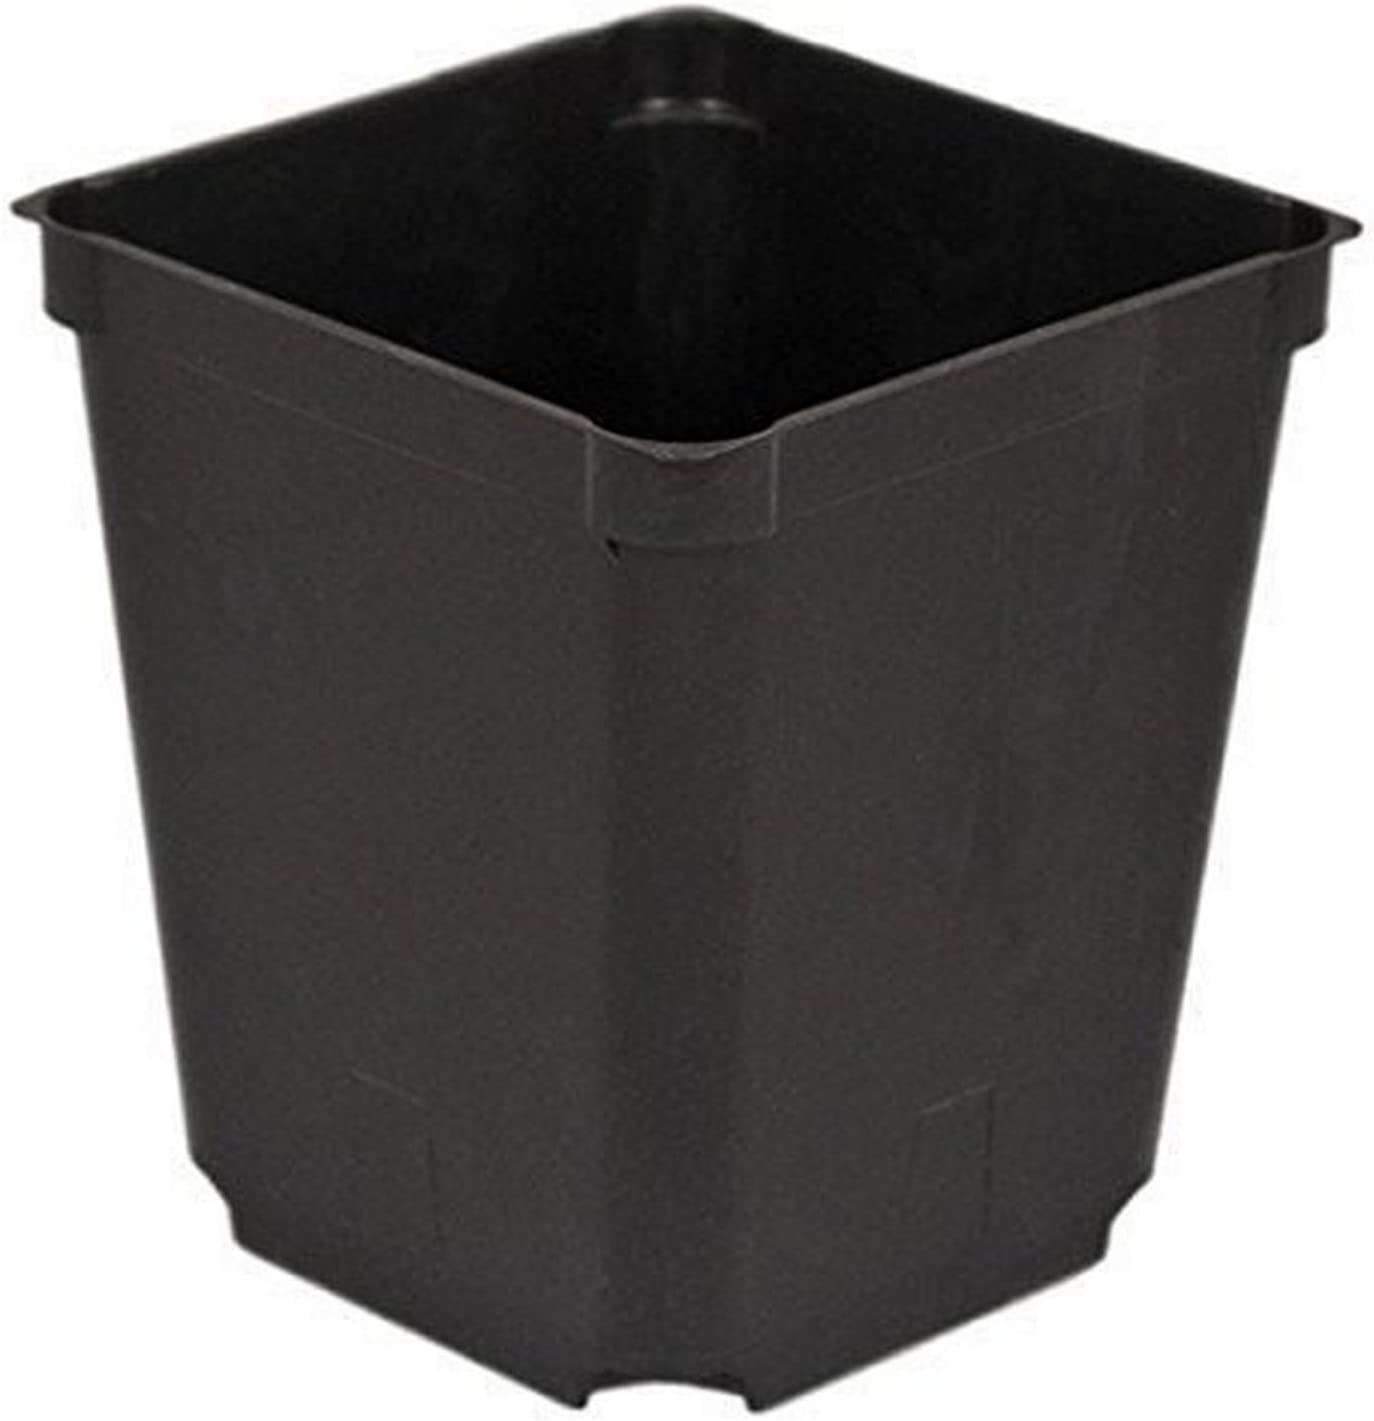 McConkey Square Nursery Pot, Case of 60: Garden & Outdoor